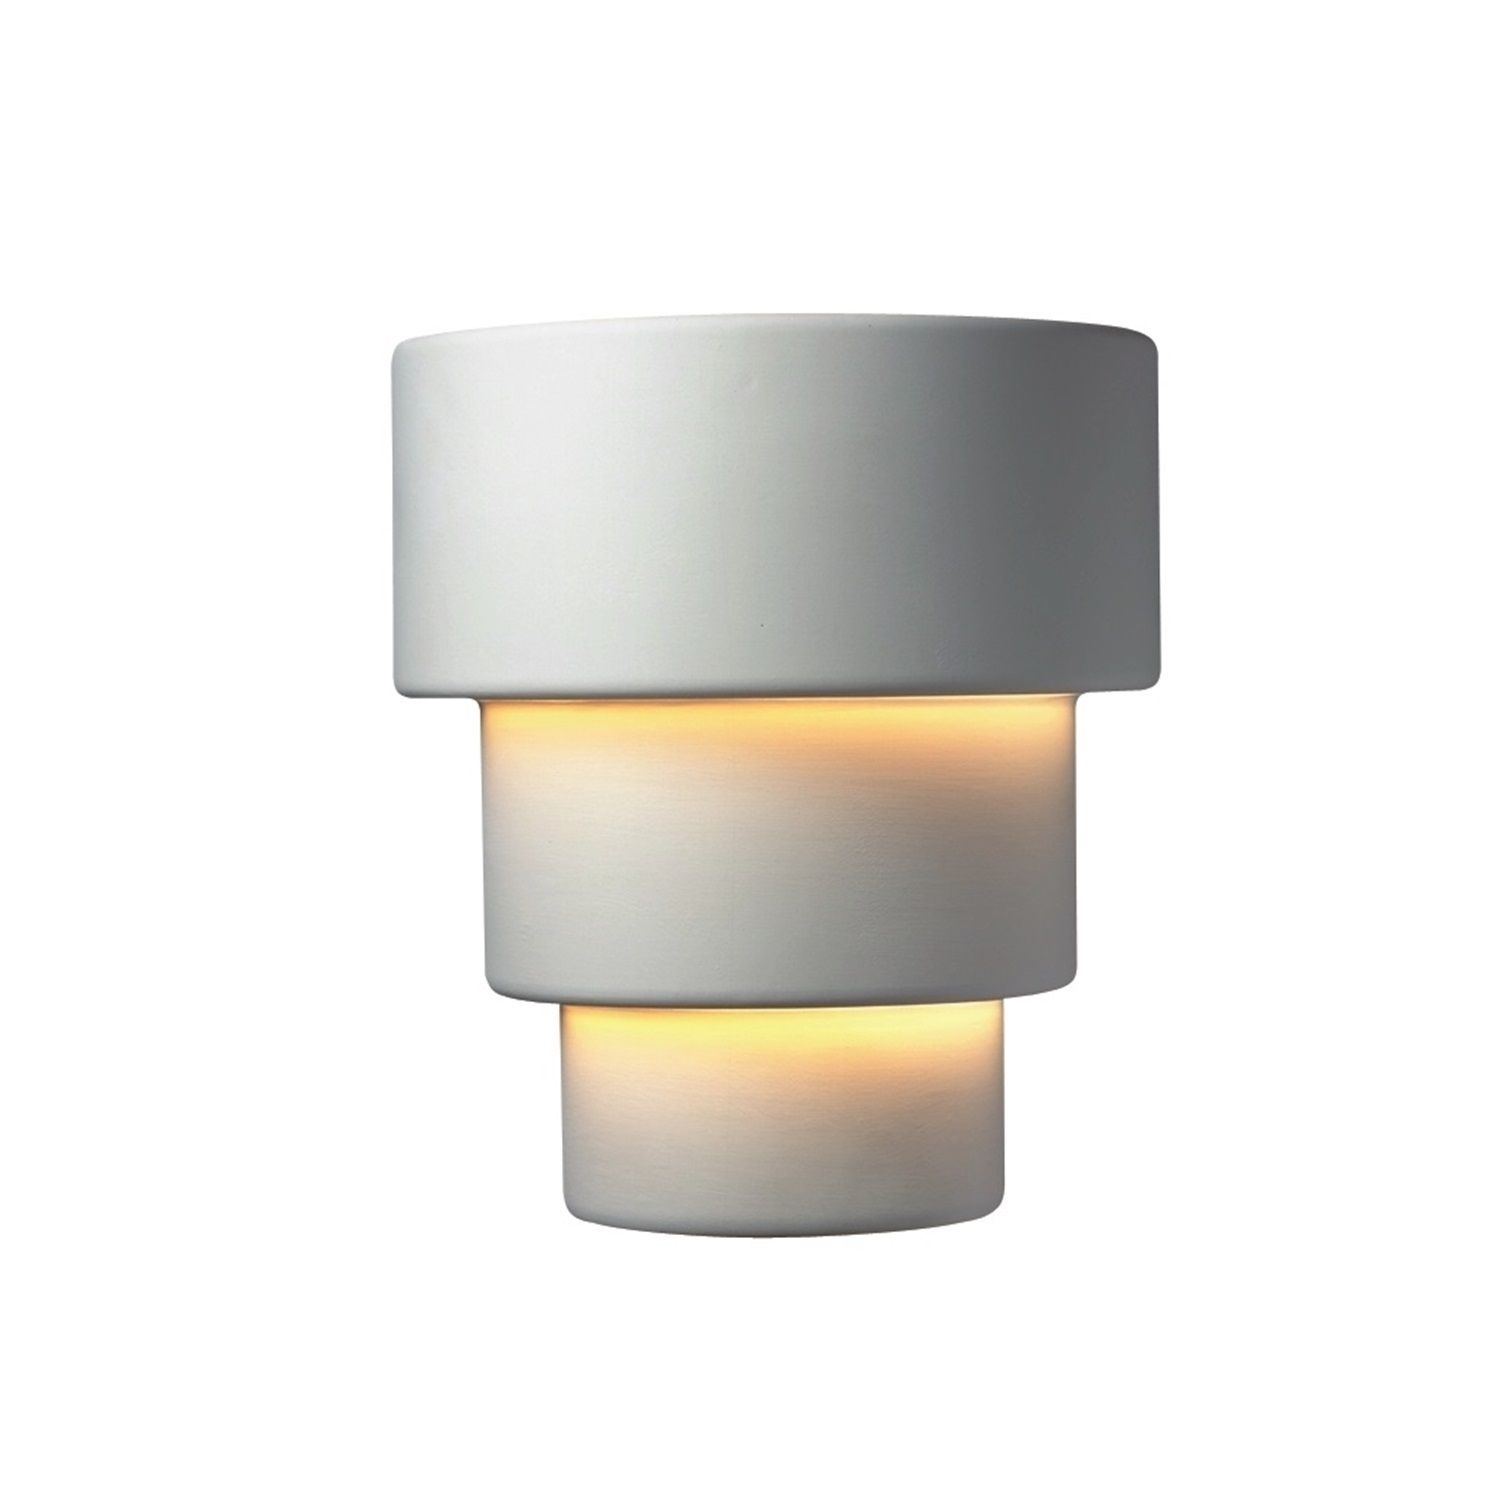 Justice design group ambiance bisque outdoor large terrance wall justice design group ambiance bisque outdoor large terrance wall sconce bisque white ceramic amipublicfo Gallery